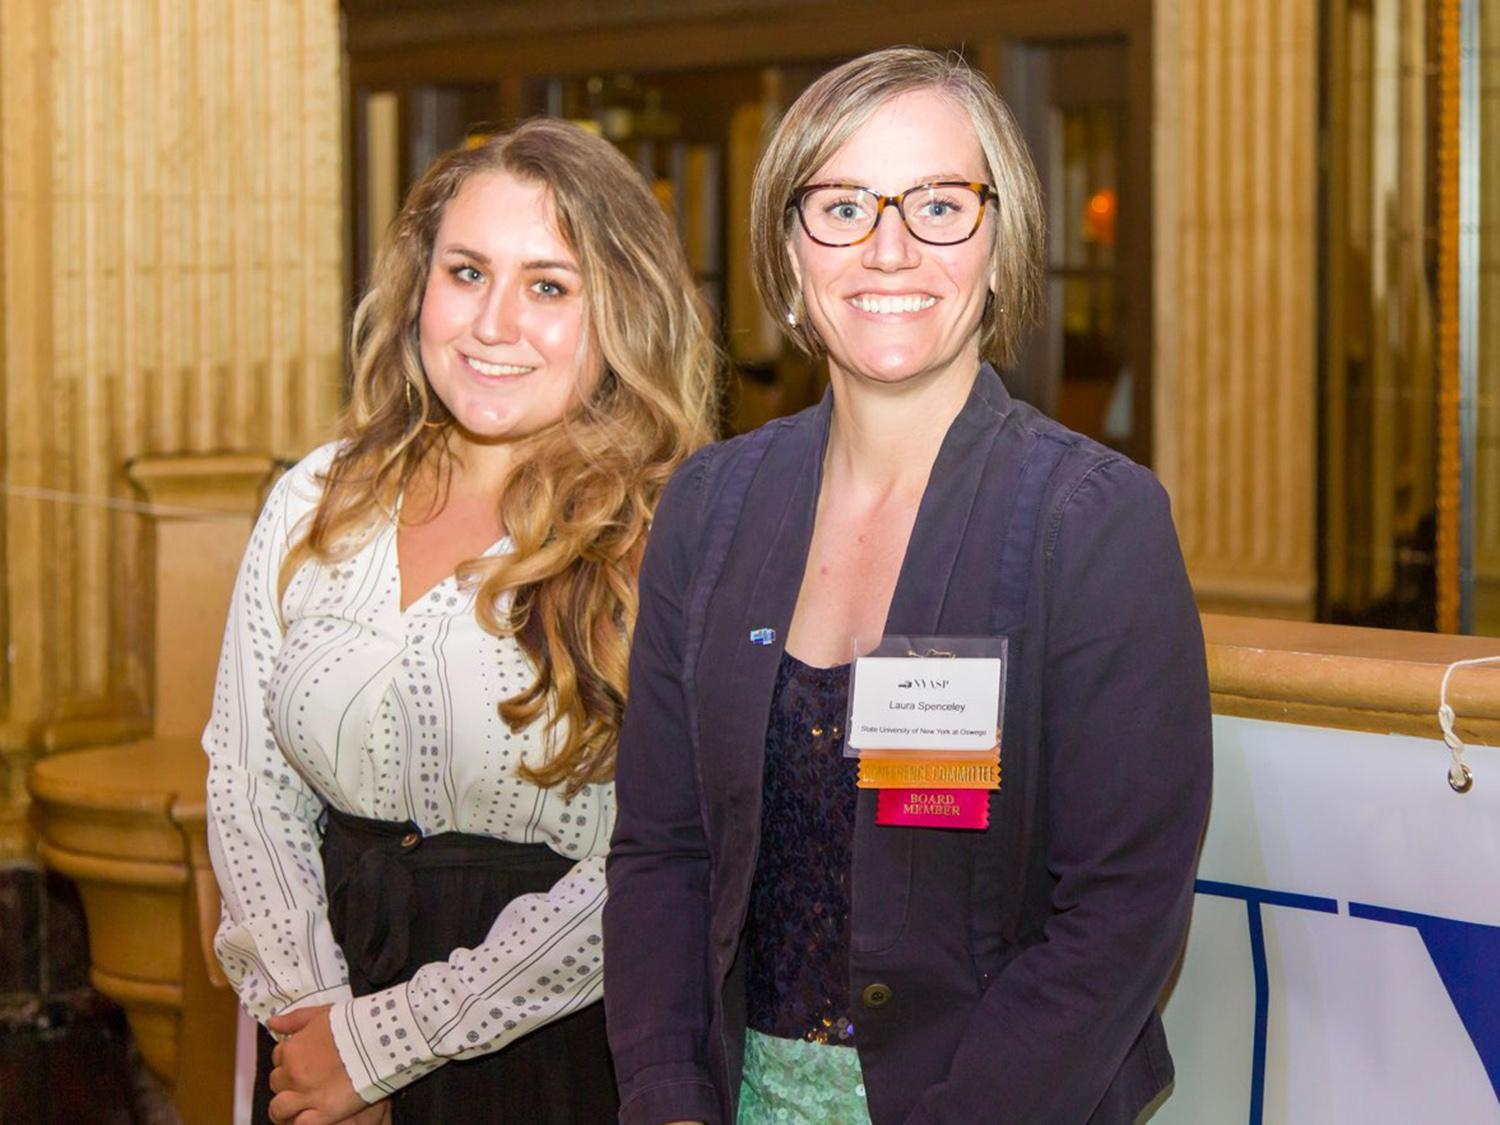 Laura Spenceley and Raychel Kramer, who both won awards at the New York Association of School Psychologists conference